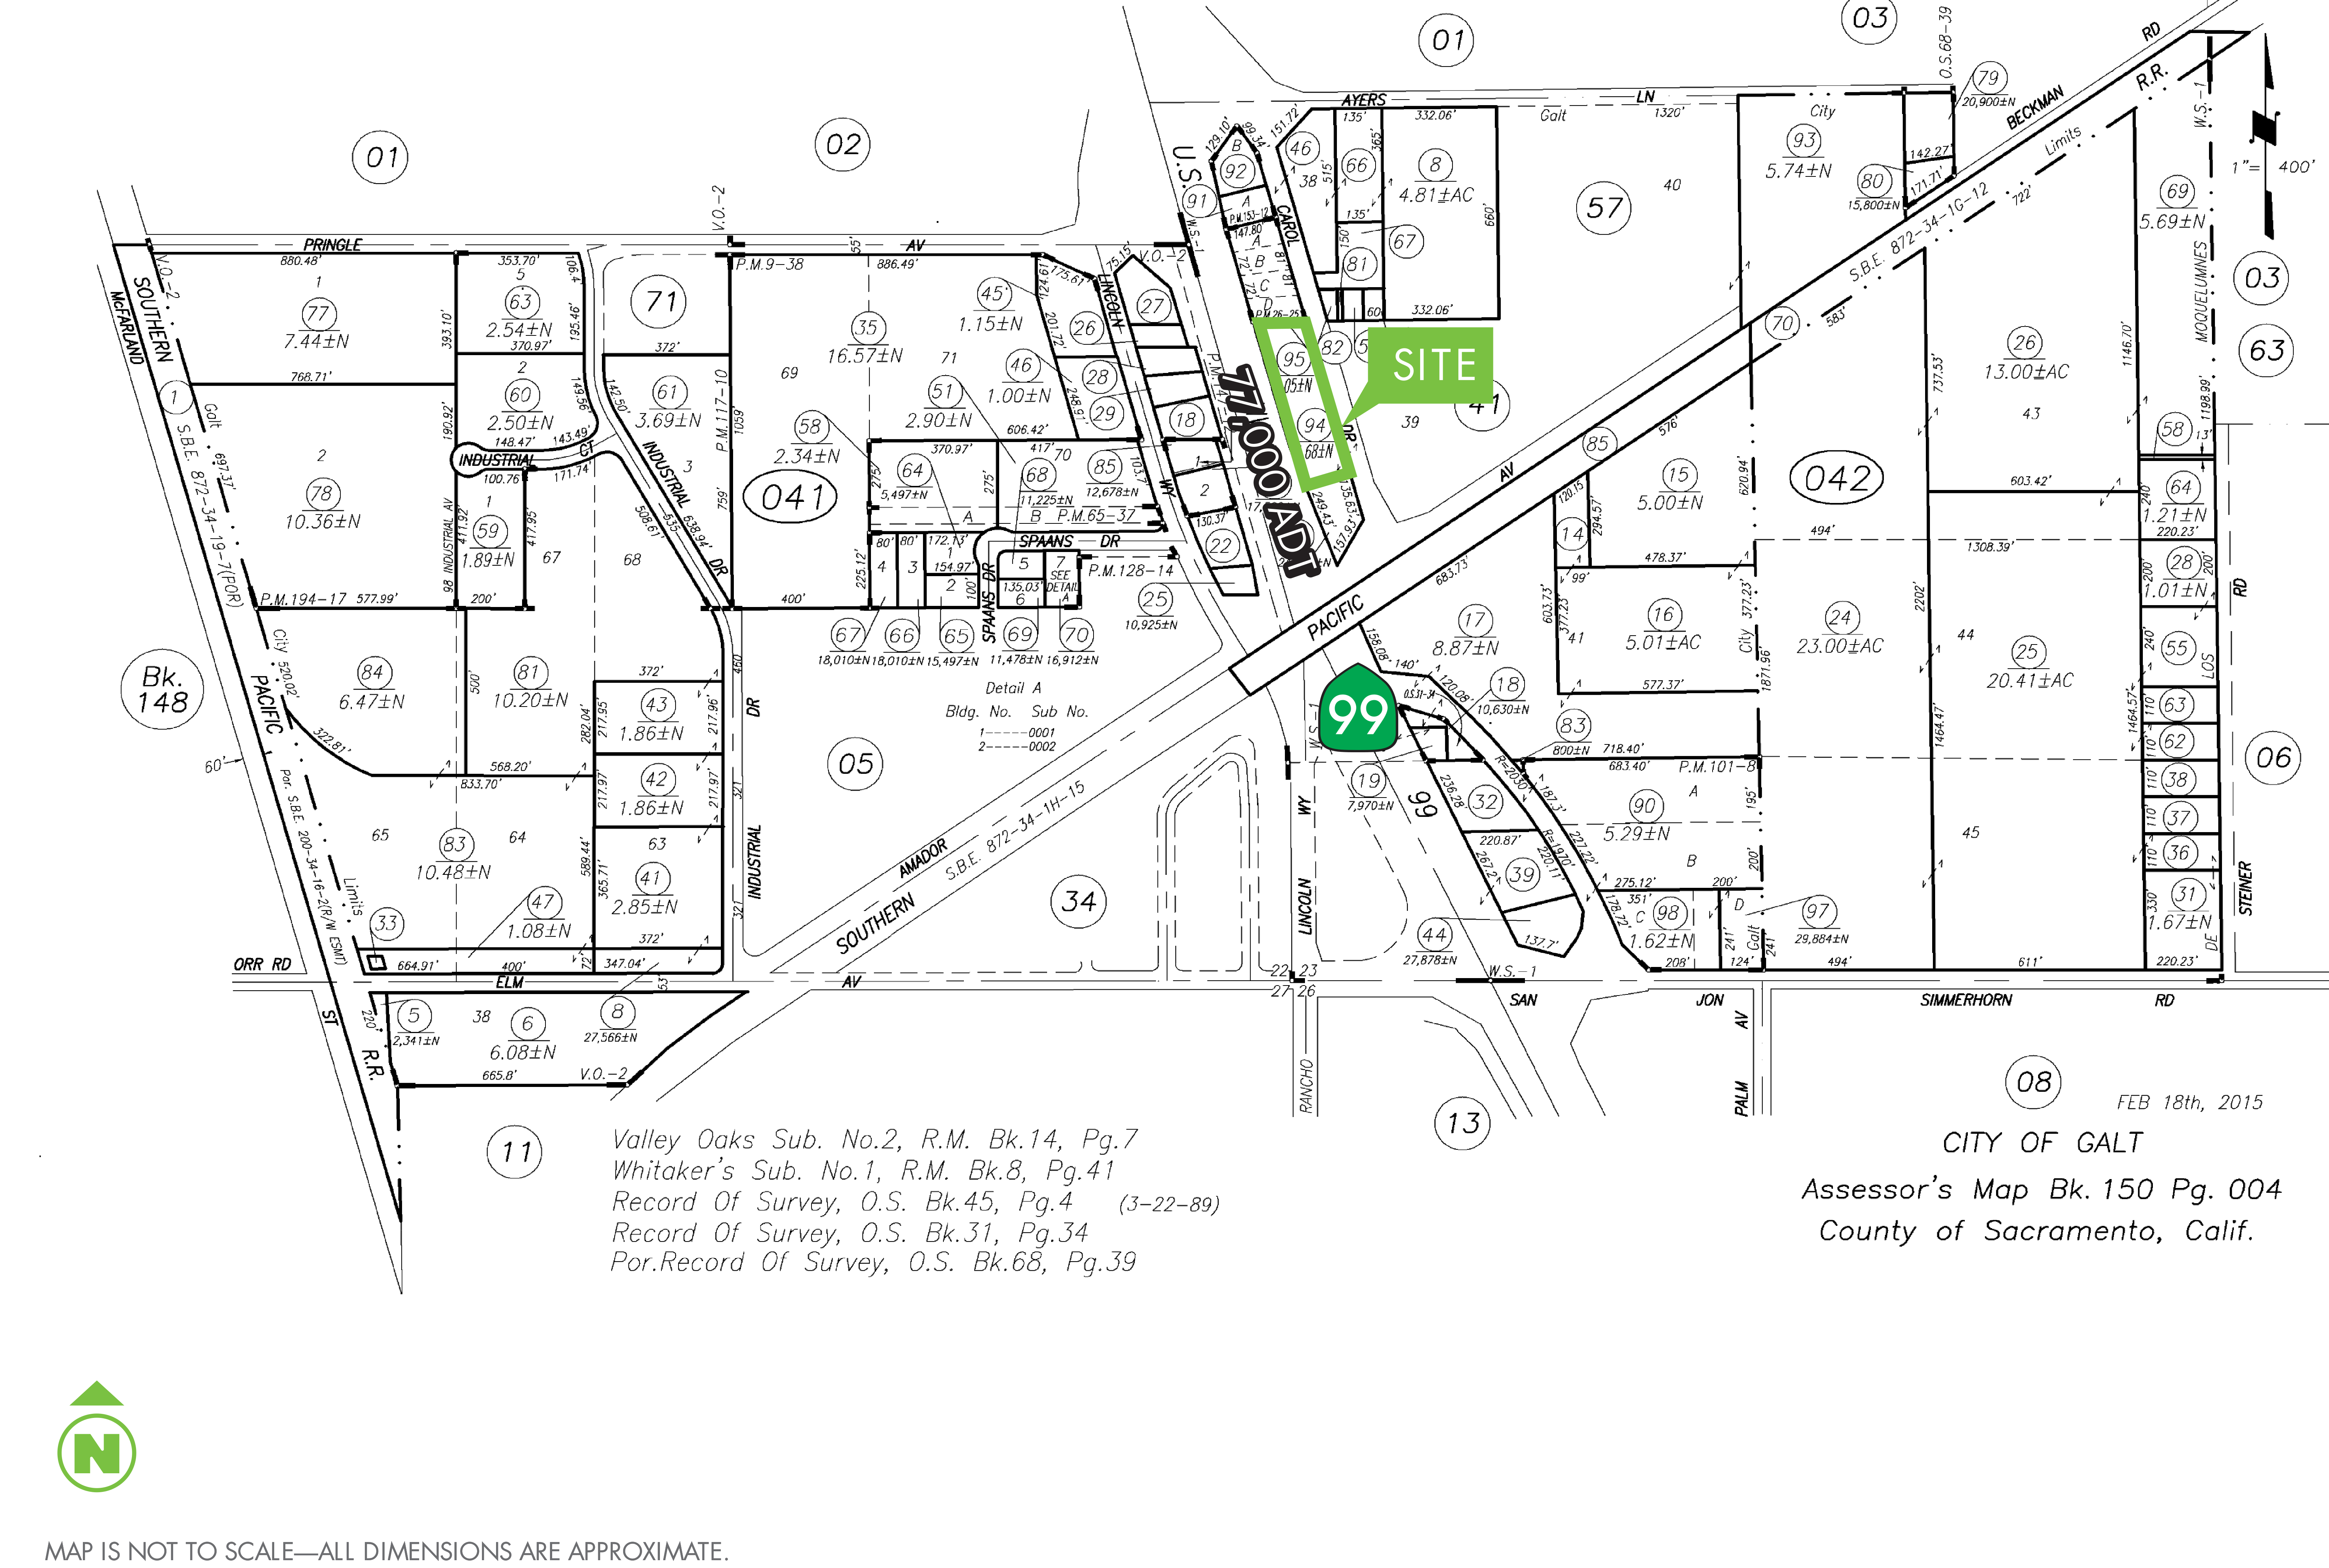 Commercial Land - Carol Dr: site plan